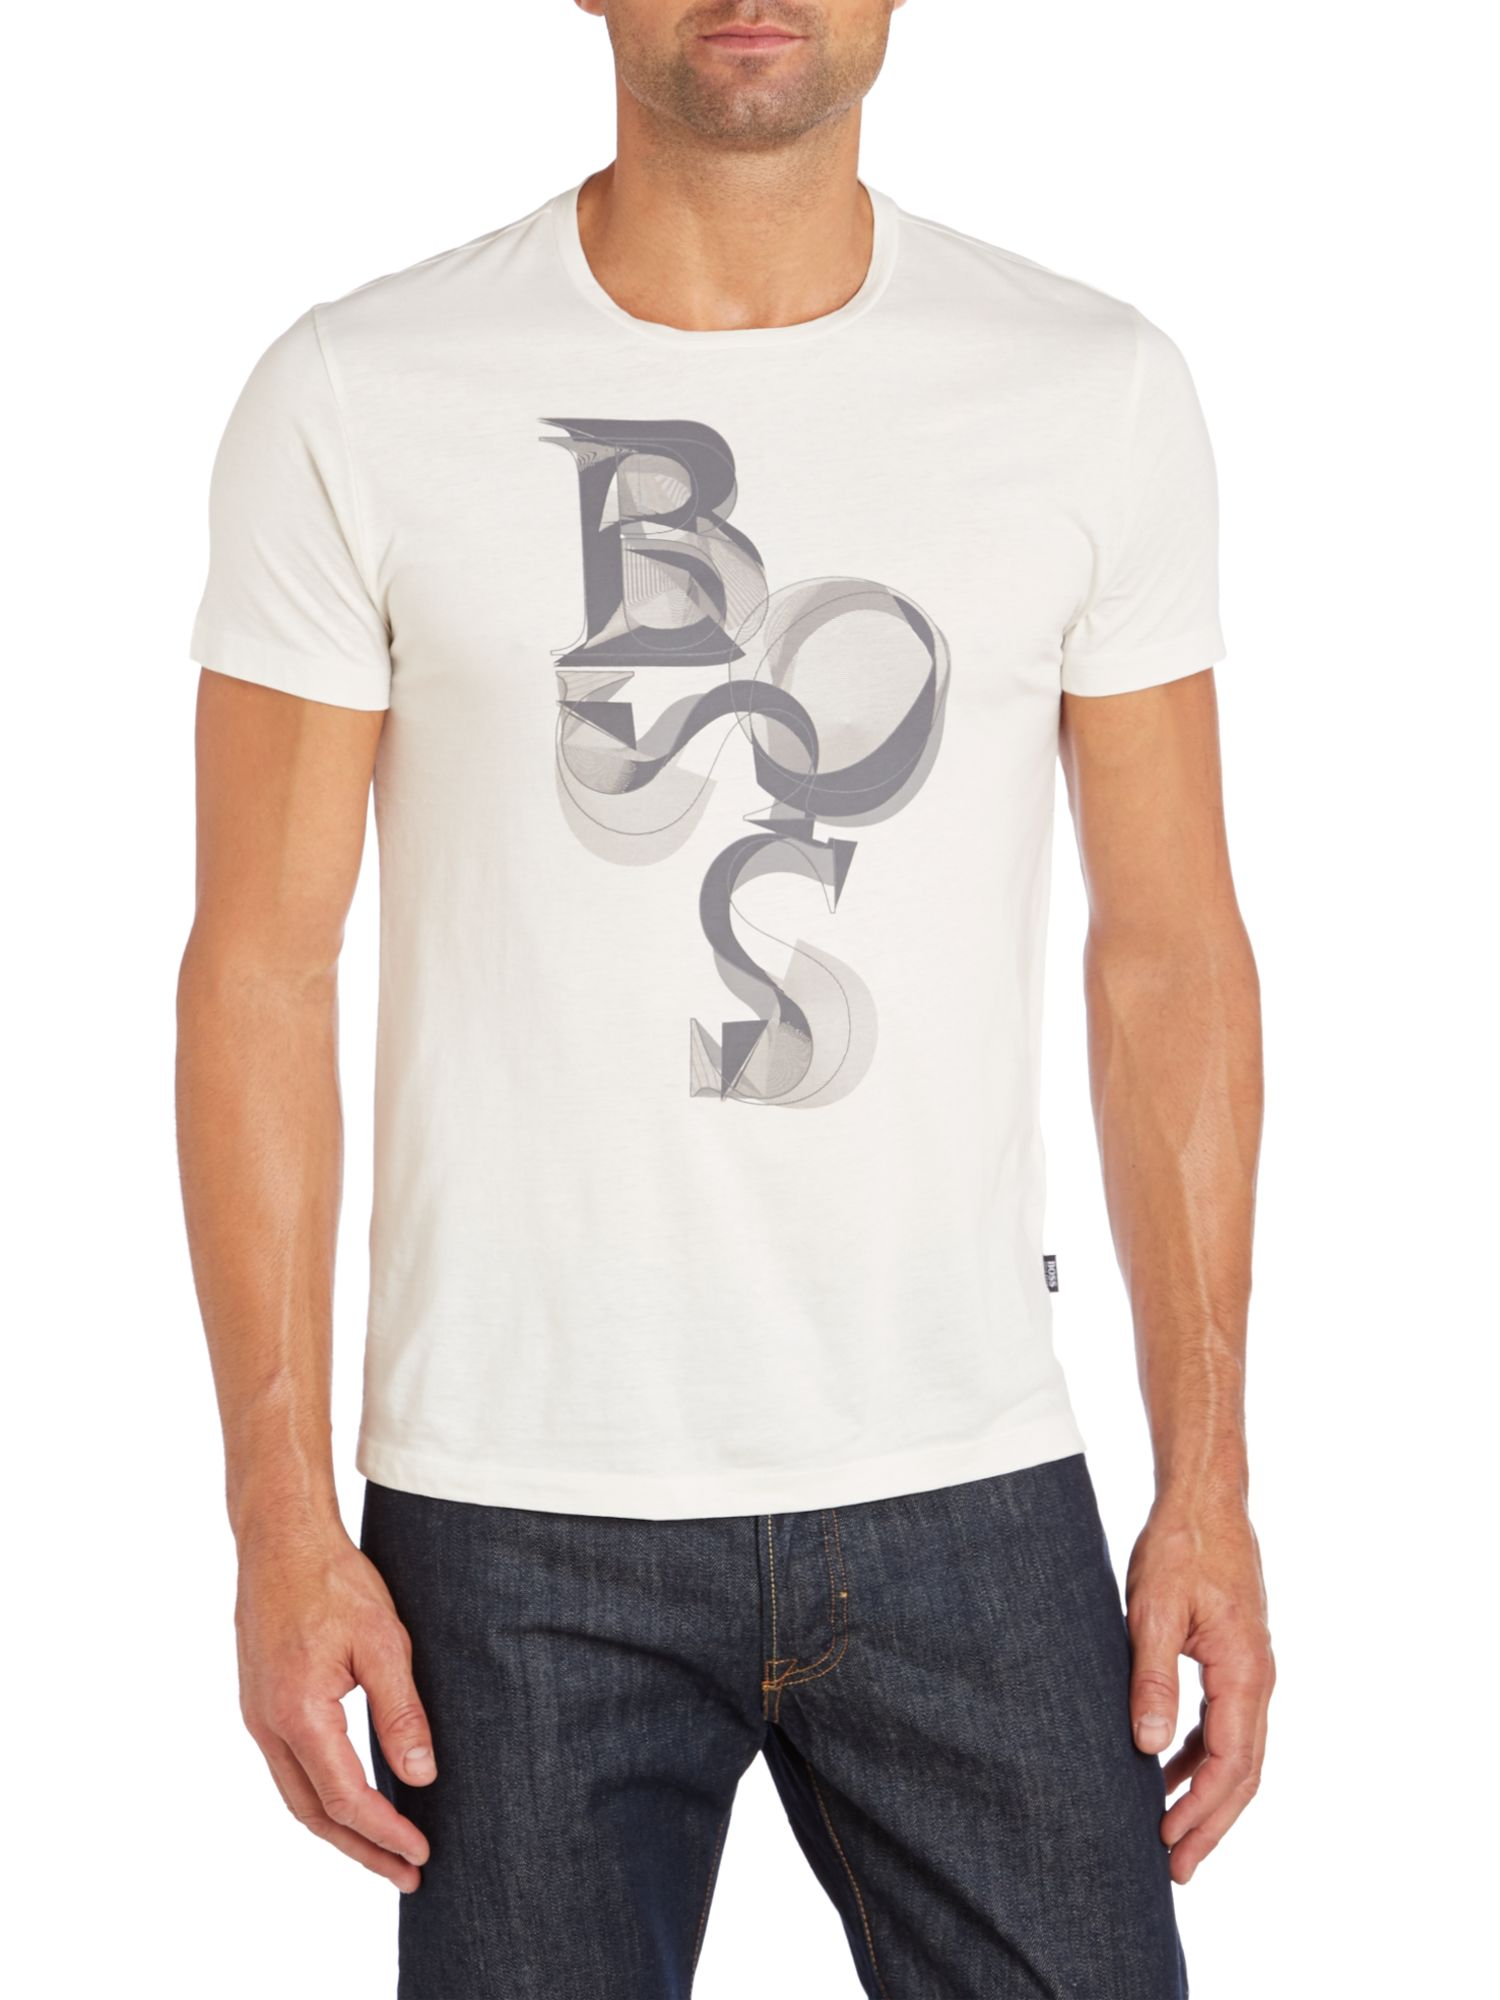 Scattered boss logo t shirt